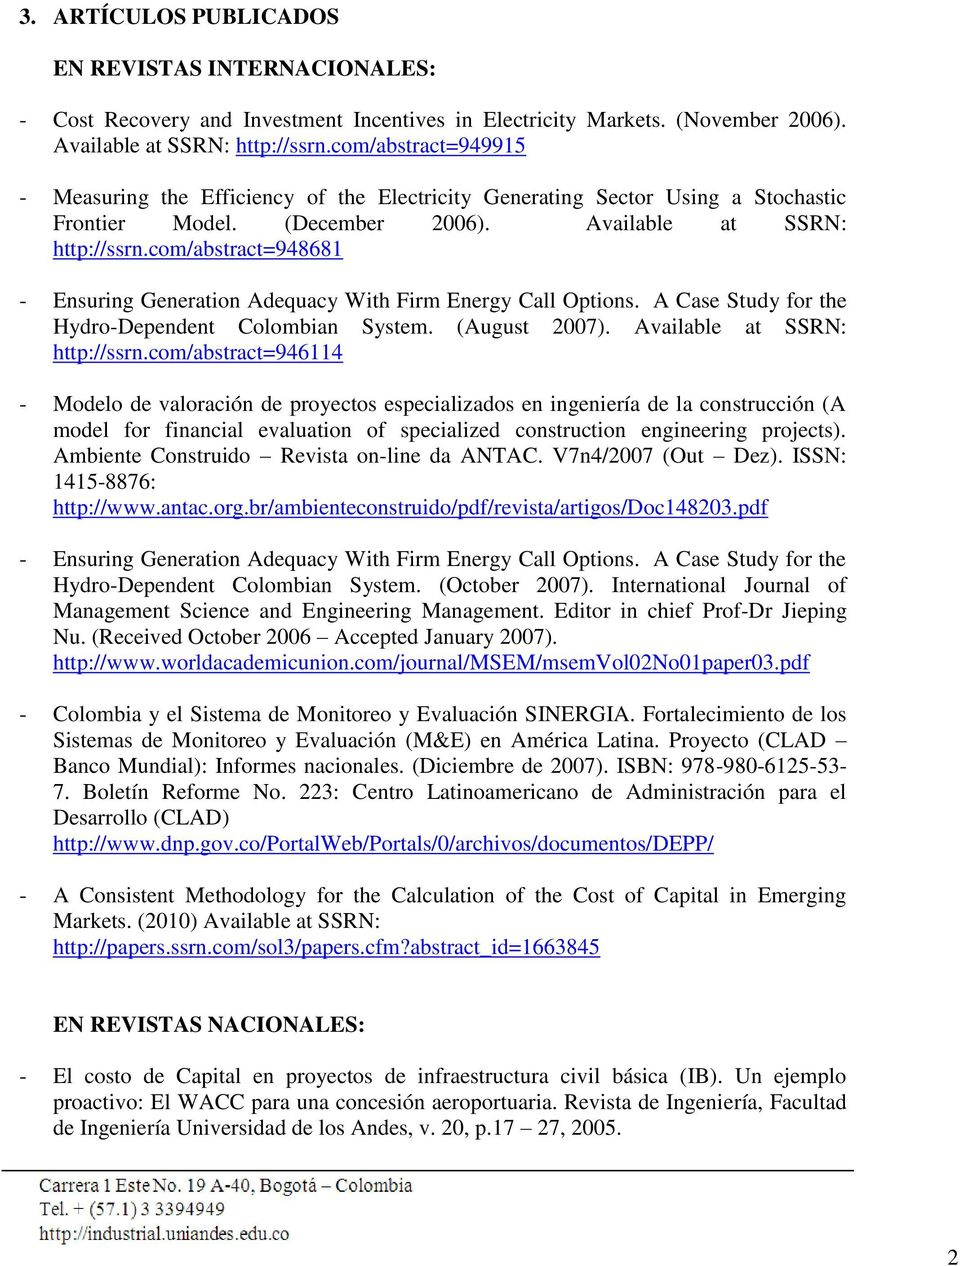 com/abstract=948681 - Ensuring Generation Adequacy With Firm Energy Call Options. A Case Study for the Hydro-Dependent Colombian System. (August 2007). Available at SSRN: http://ssrn.